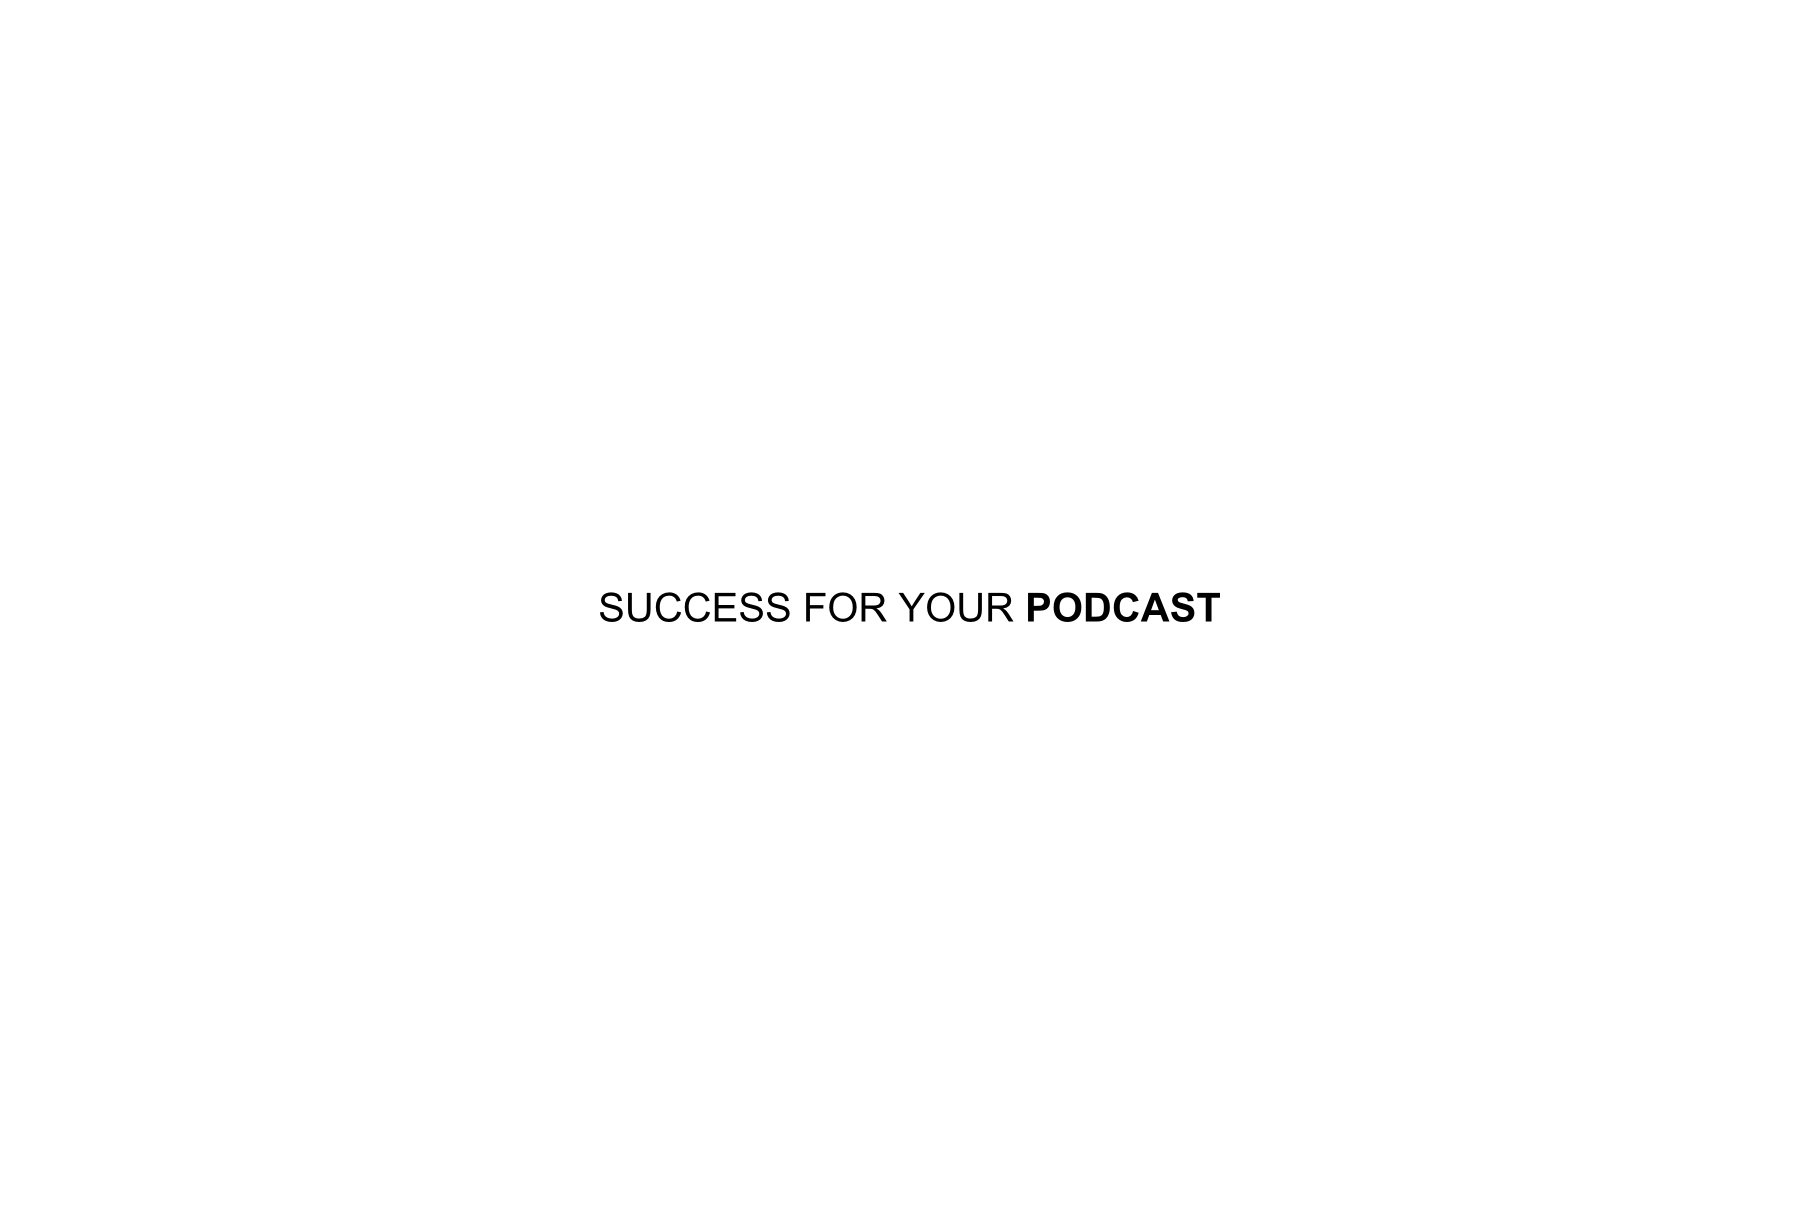 Podcast Instagram Stories and Post - Motivationer Podcaster example image 2